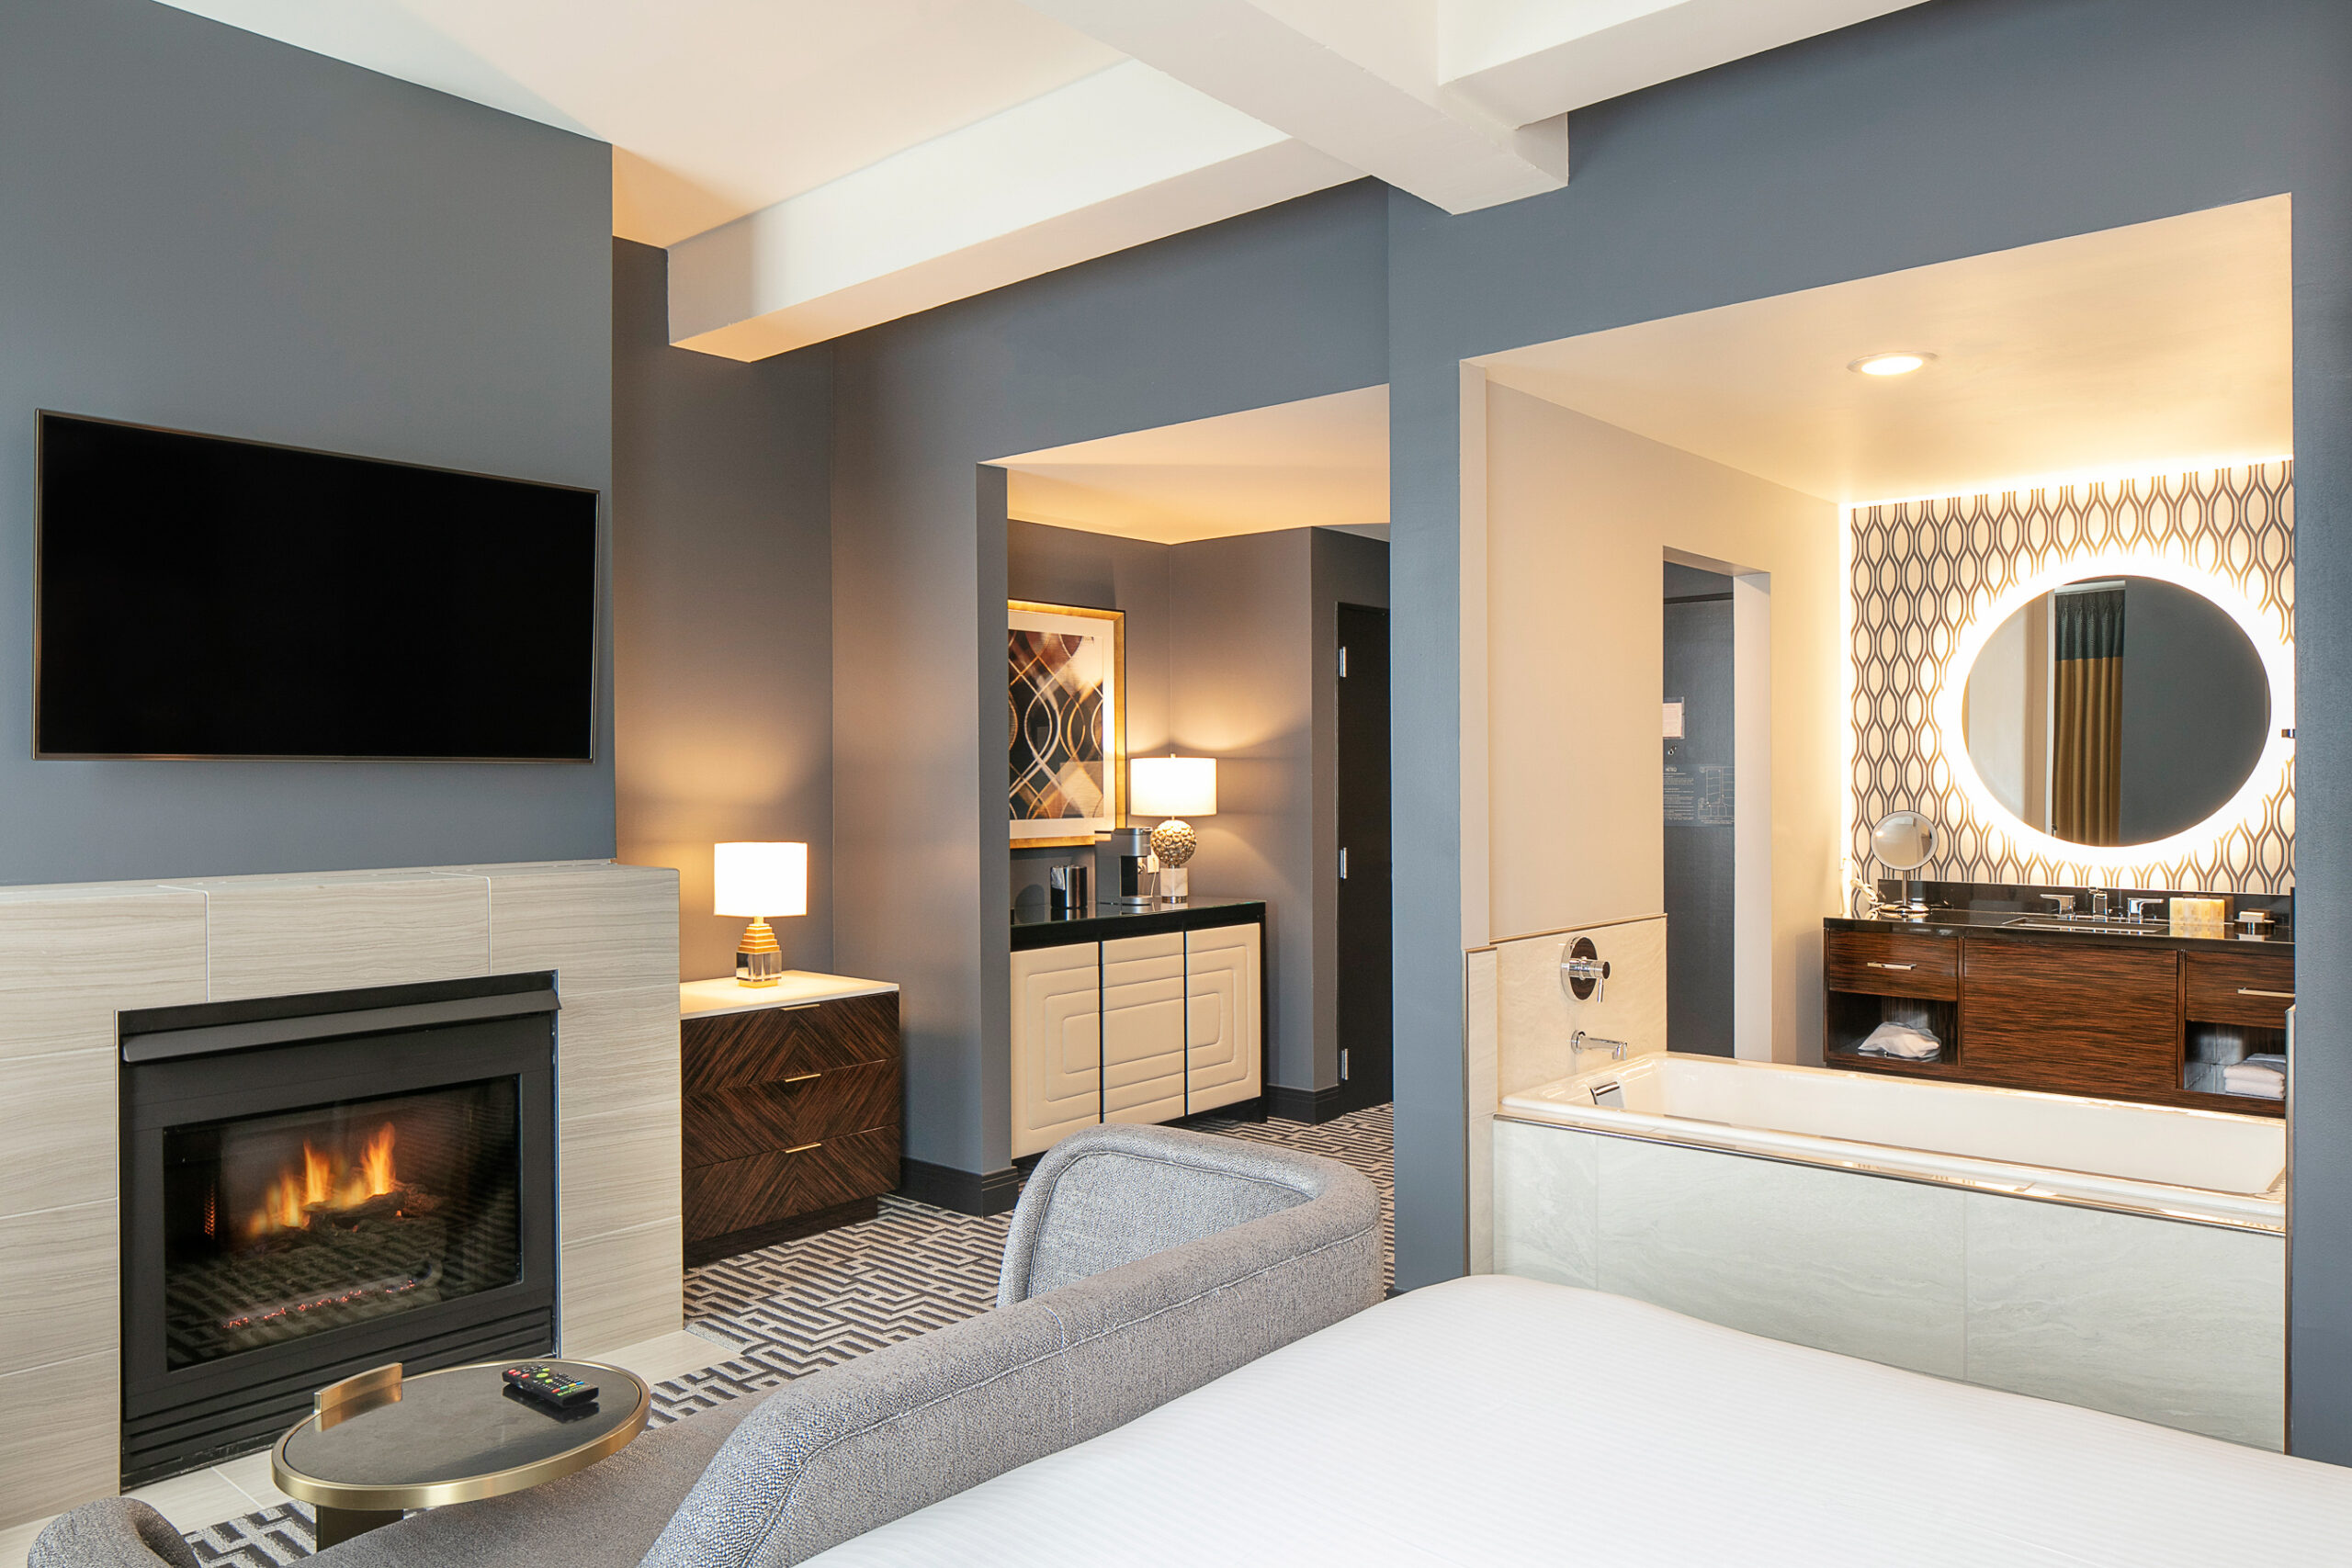 hotel room with blue walls, a small fireplace and a large exposed bathtub and vanity area